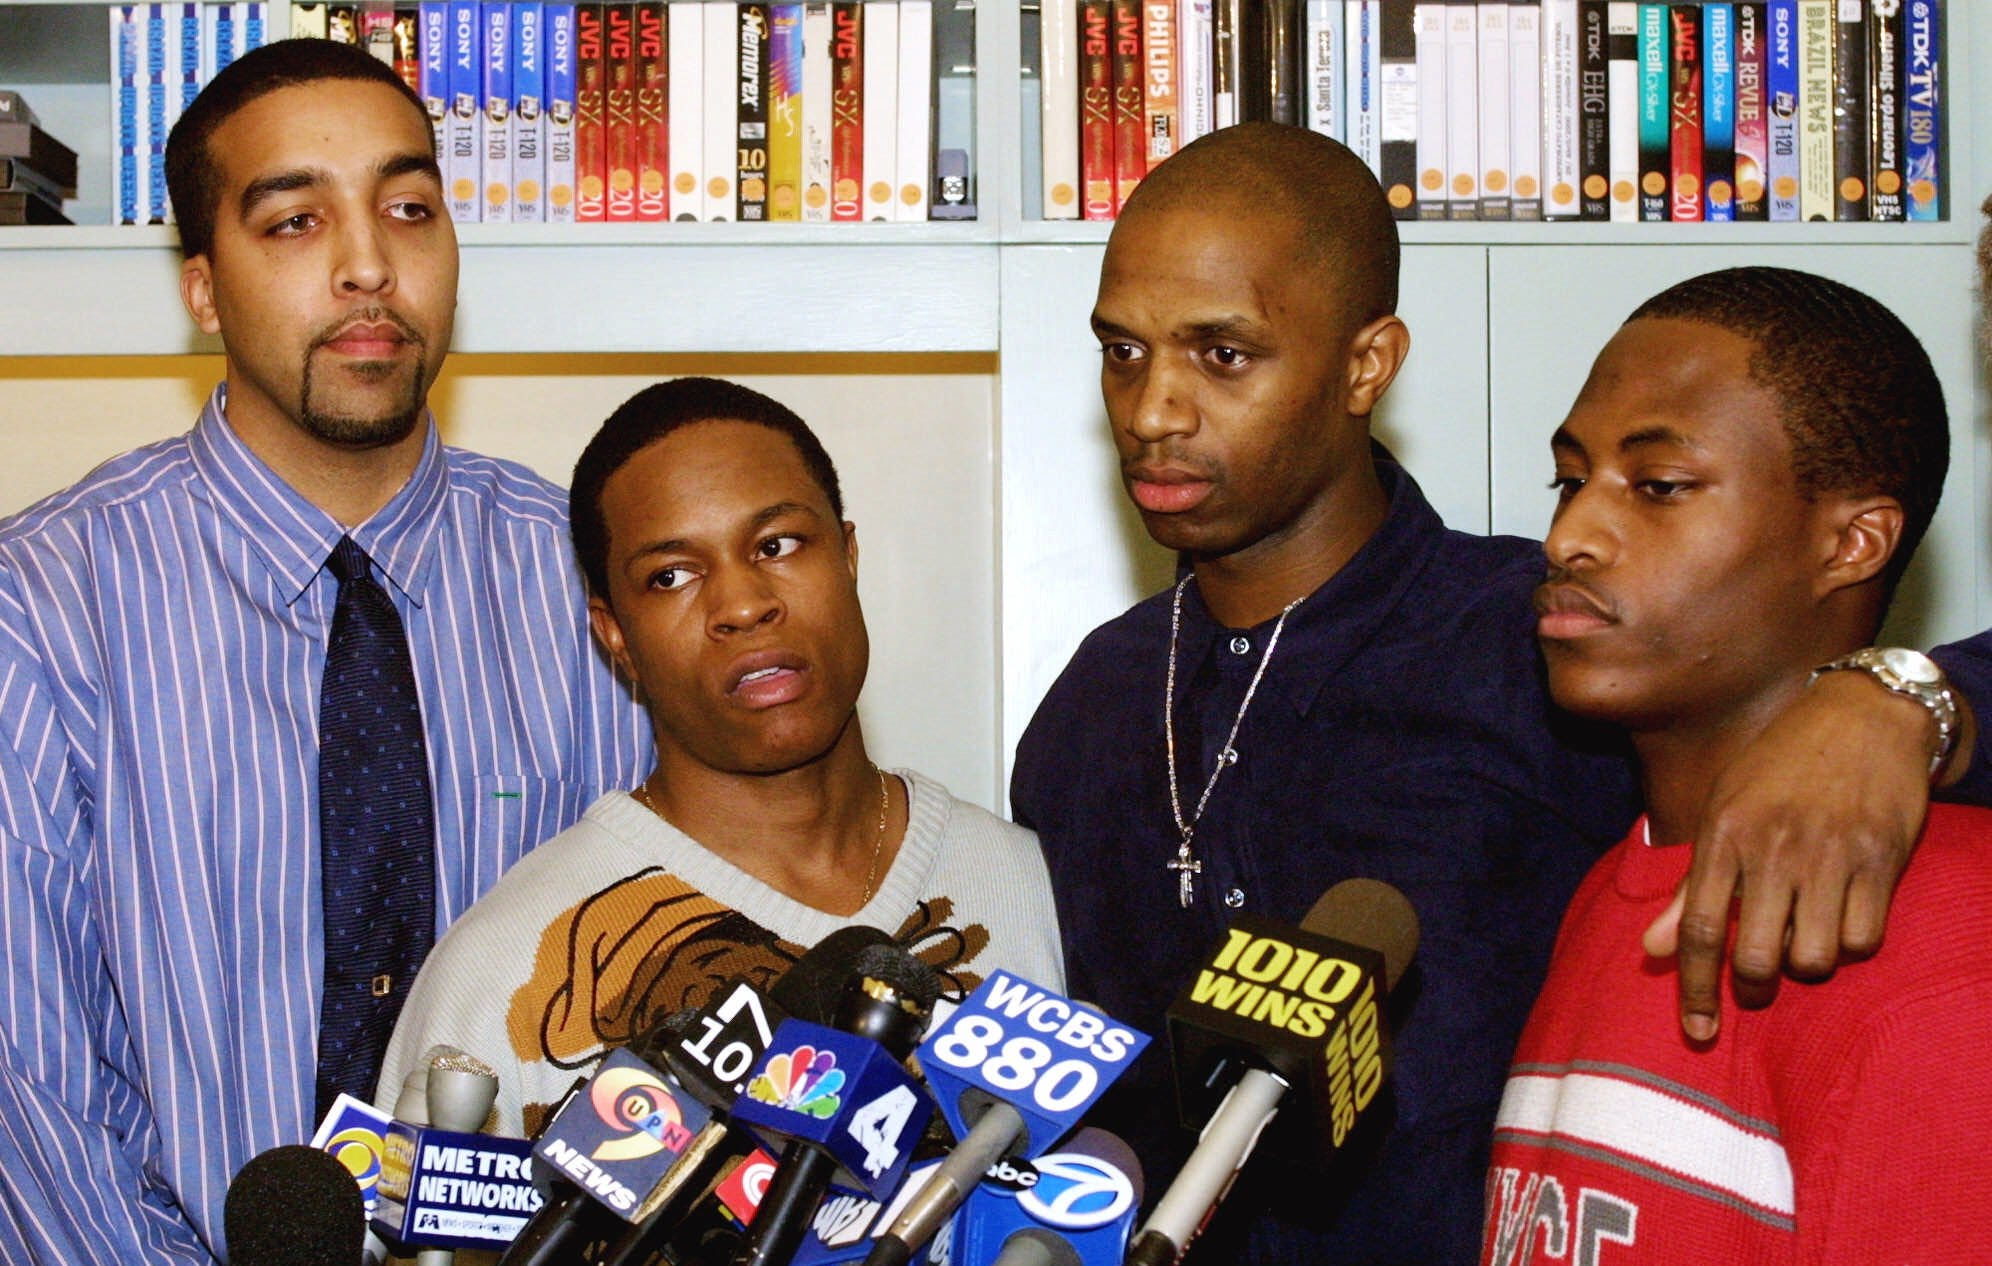 Danny Reyes, left, Keshon Moore, second left, Jarmaine Grant, third left, and Rayshawn Brown speak to the media at the end of a news conference Friday, Feb. 2, 2001, in New York. The state of New Jersey agreed to pay $12.9 million to the four who were victims of a 1998 police shooting on the New Jersey Turnpike that caused a national furor over racial profiling.